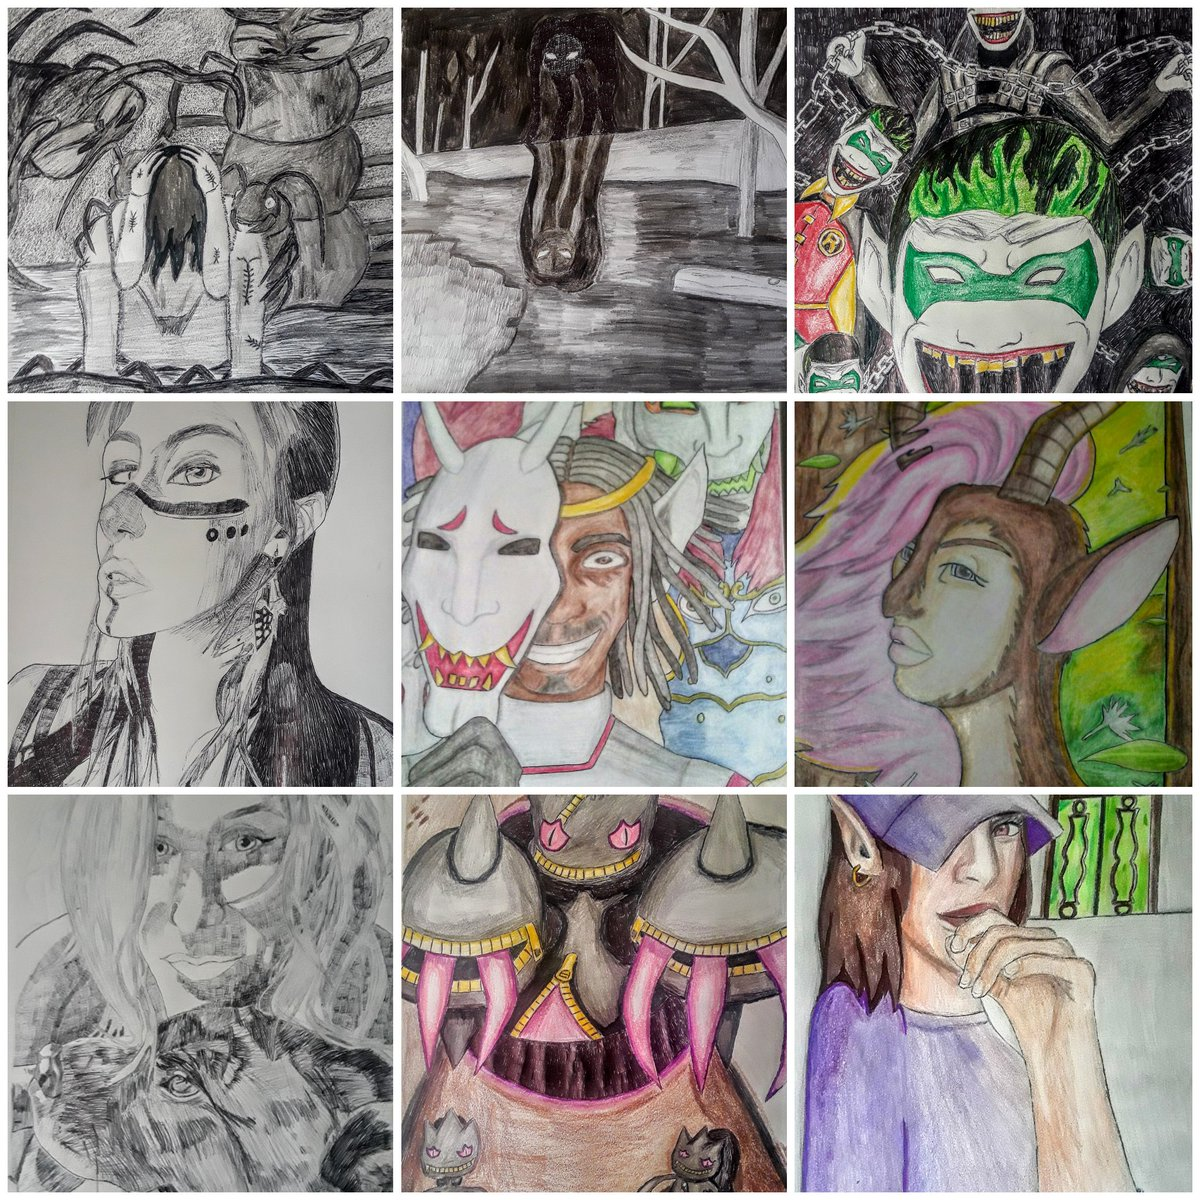 Soooooo I'm kinda cheating with the #ArtvsArtist since I wanna keep a anonymous approach to what I look like but here's mine. The one in the middle is a self portrait sooooo...  *shrug shoulders* 🤷♂️😁 I do horror, anime and some fanart